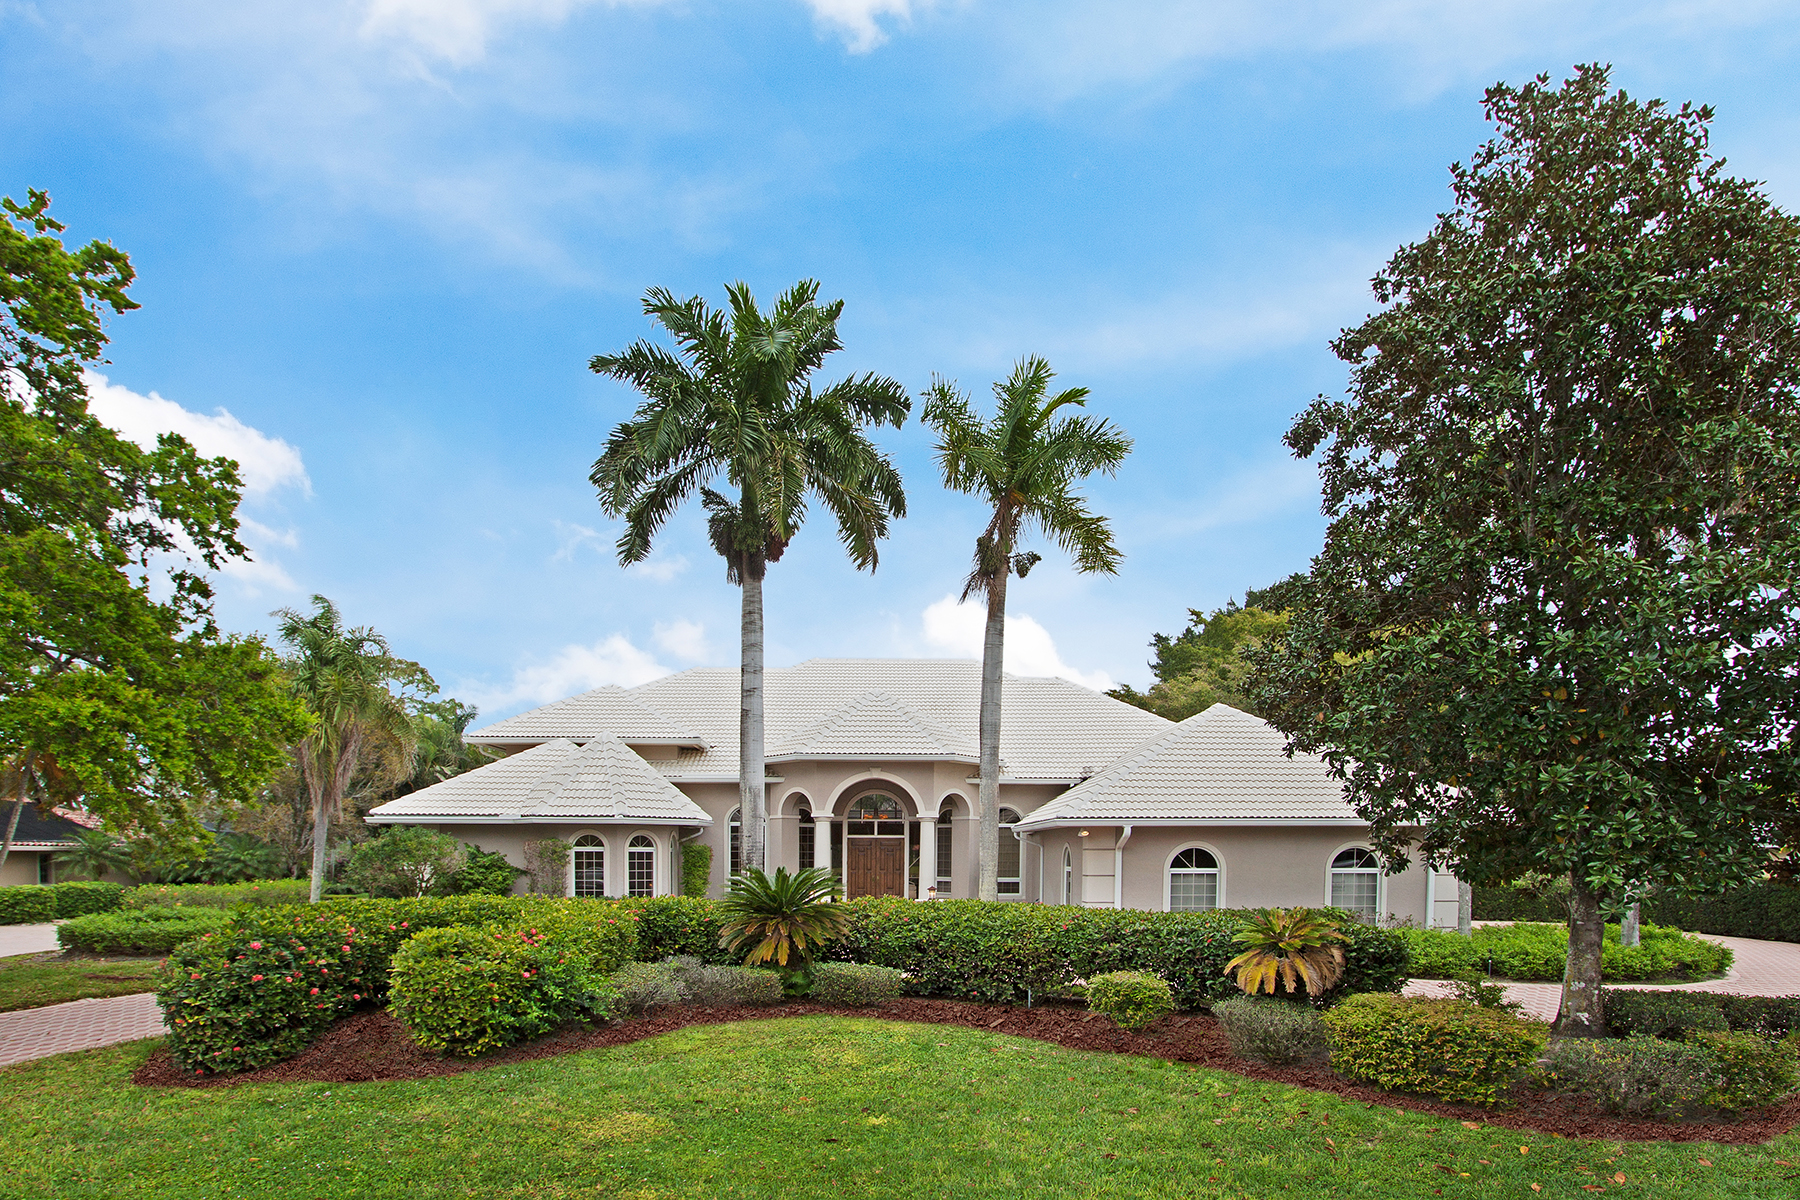 Single Family Home for Sale at QUAIL CREEK 12924 Bald Cypress Ln Quail Creek, Naples, Florida, 34119 United States